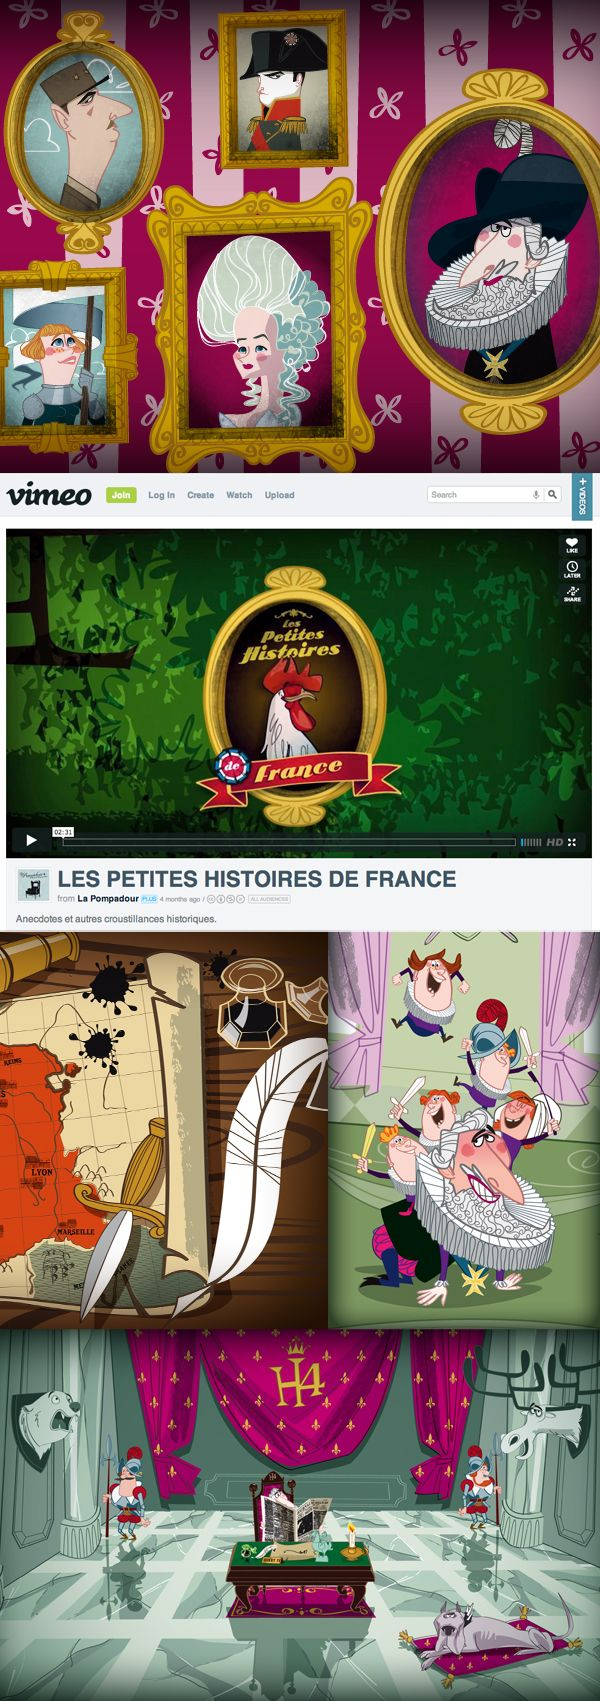 grems made illustrations for les petites histoires de france cartoon produced by la. Black Bedroom Furniture Sets. Home Design Ideas